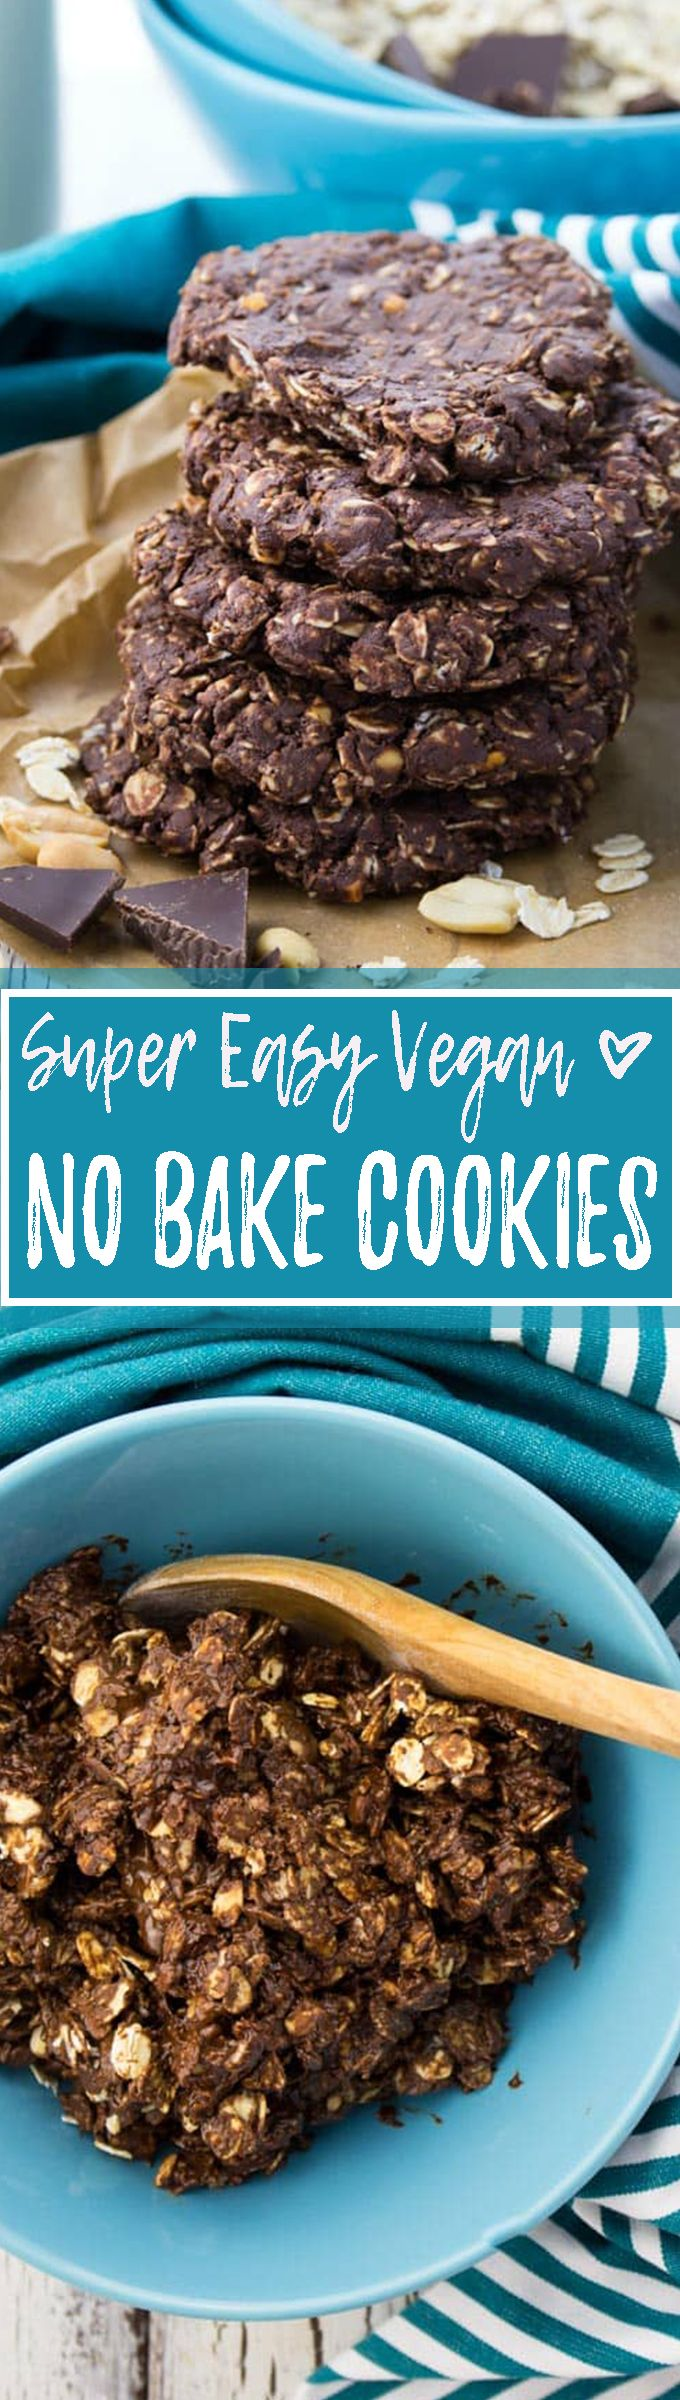 These vegan no bake cookies with chocolate and peanut butter are perfect when you feel like having a little treat and don't have enough time for real baking! You only need 10 minutes to make them! <3 | veganheaven.org